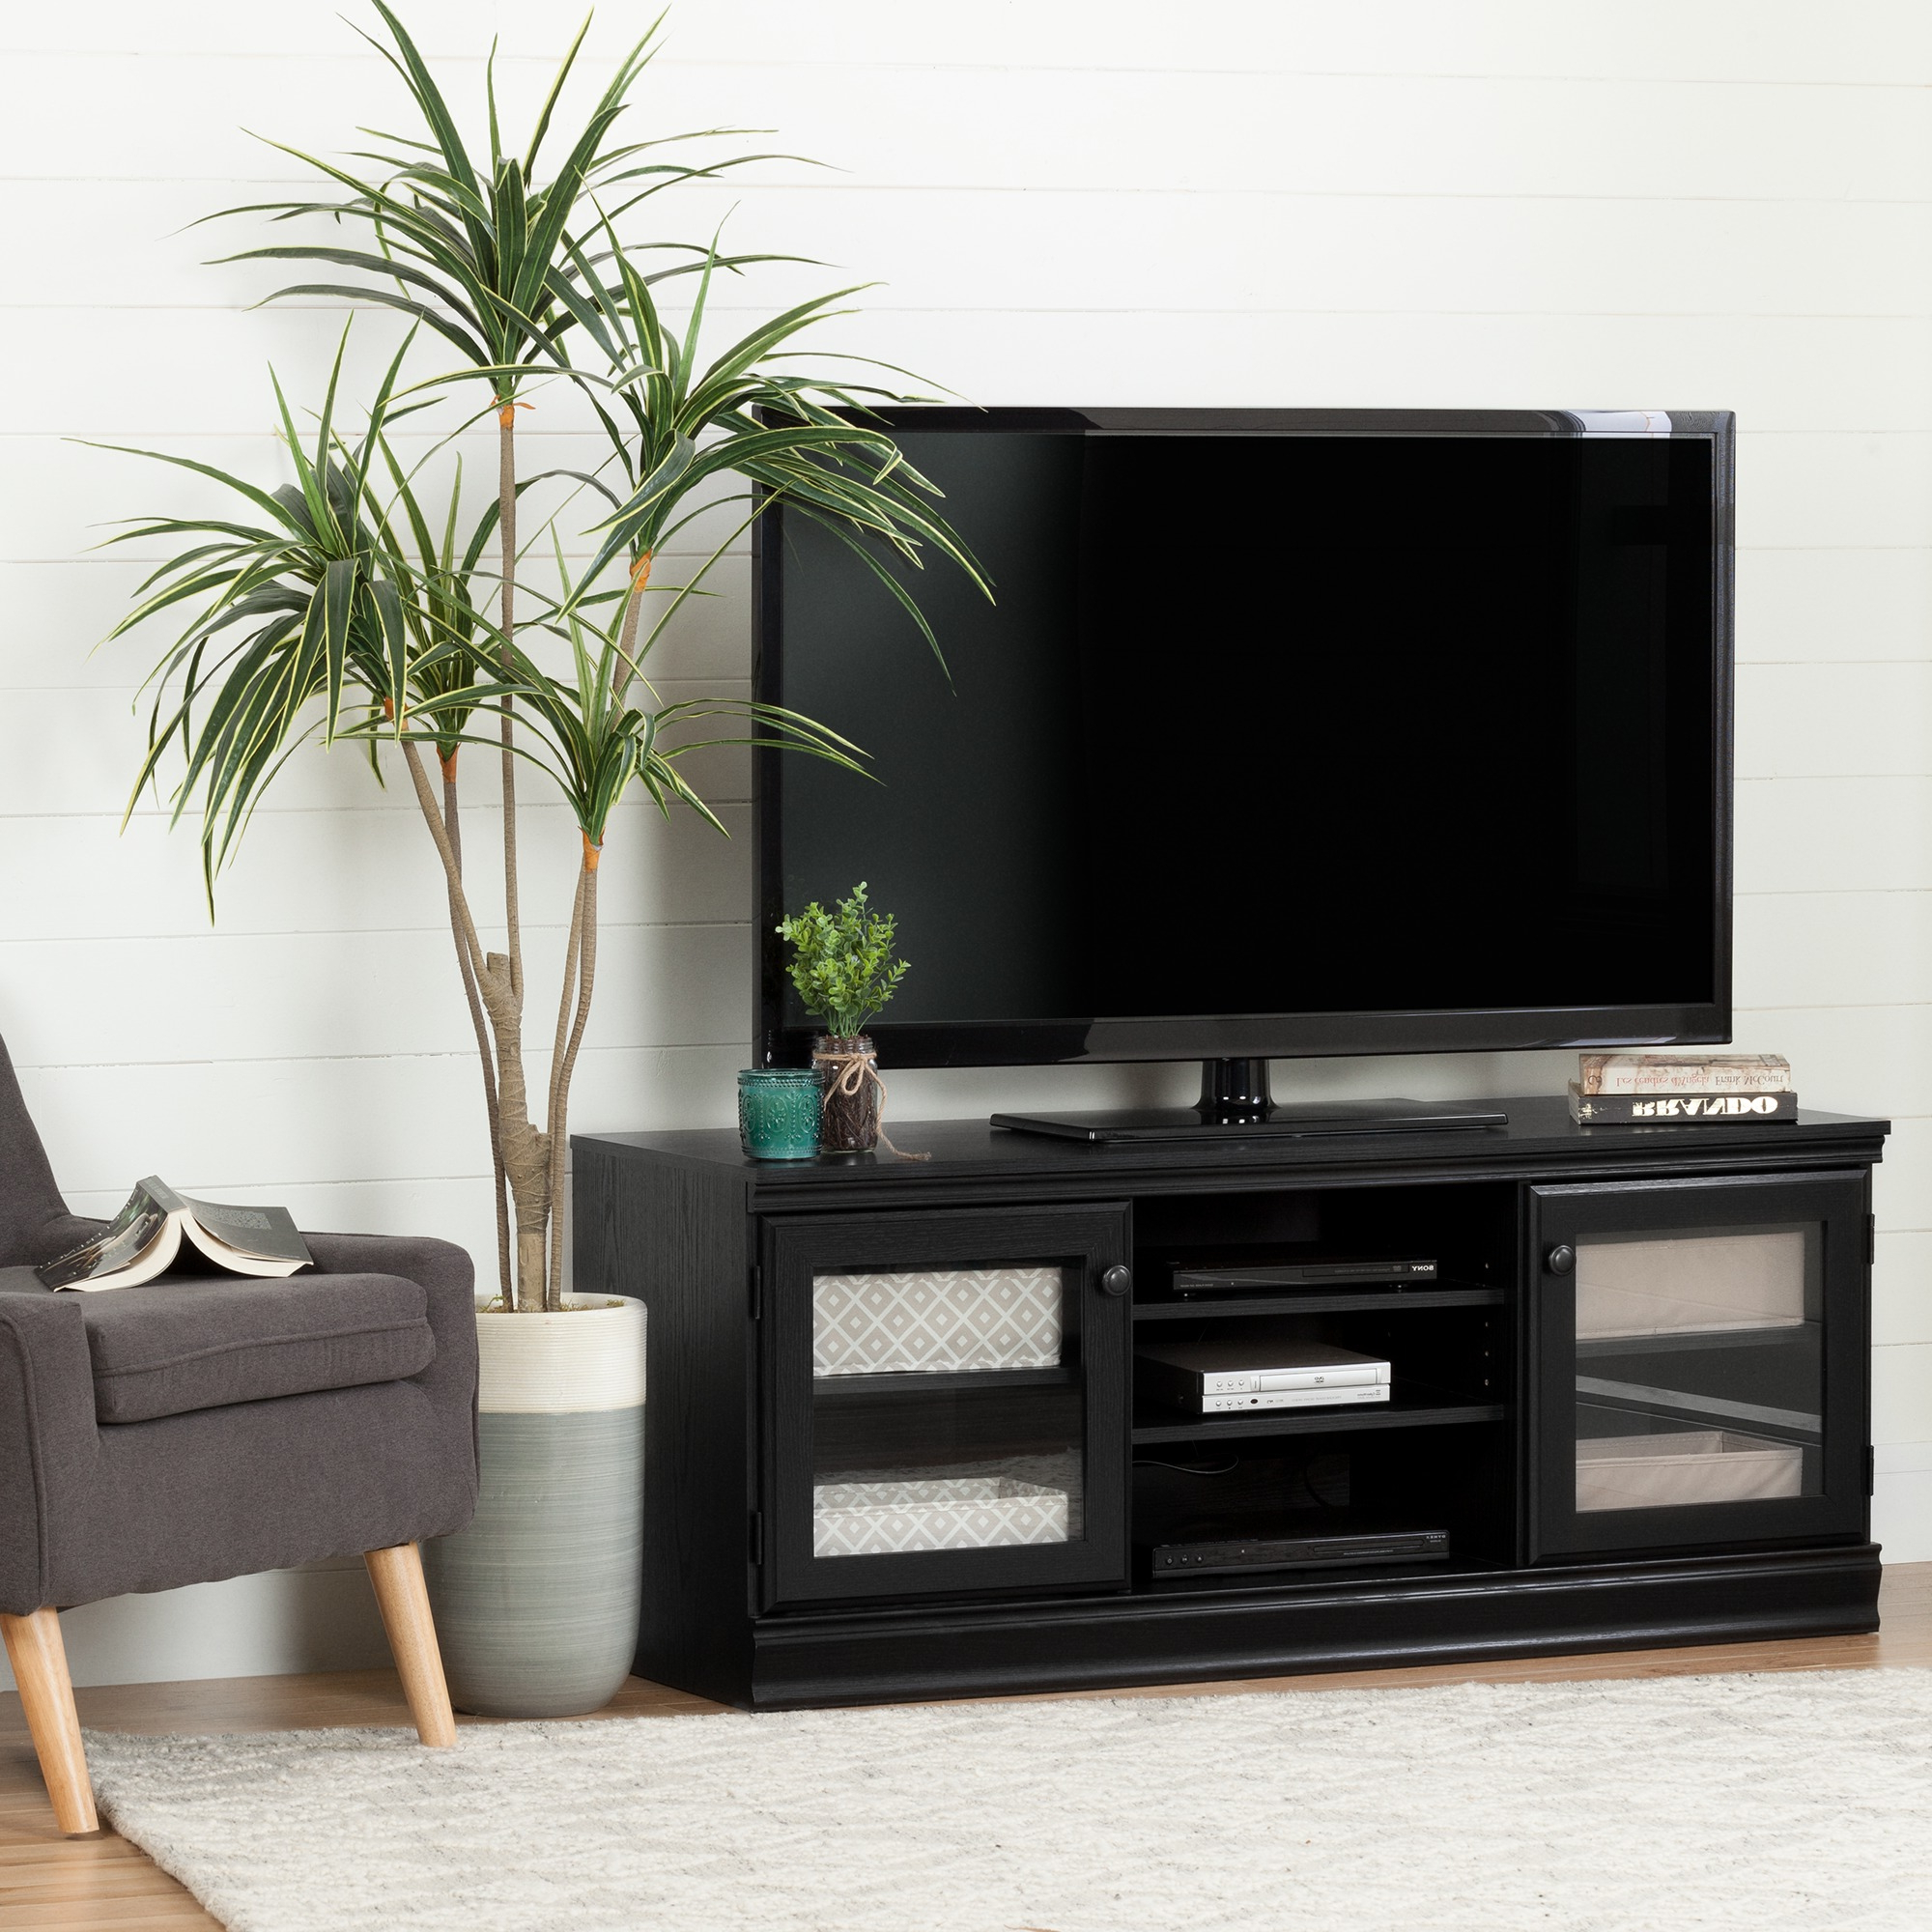 Most Current Tv Stands With Led Lights In Multiple Finishes Inside South Shore Morgan Tv Stand For Tvs Up To 75'', Multiple (View 6 of 10)